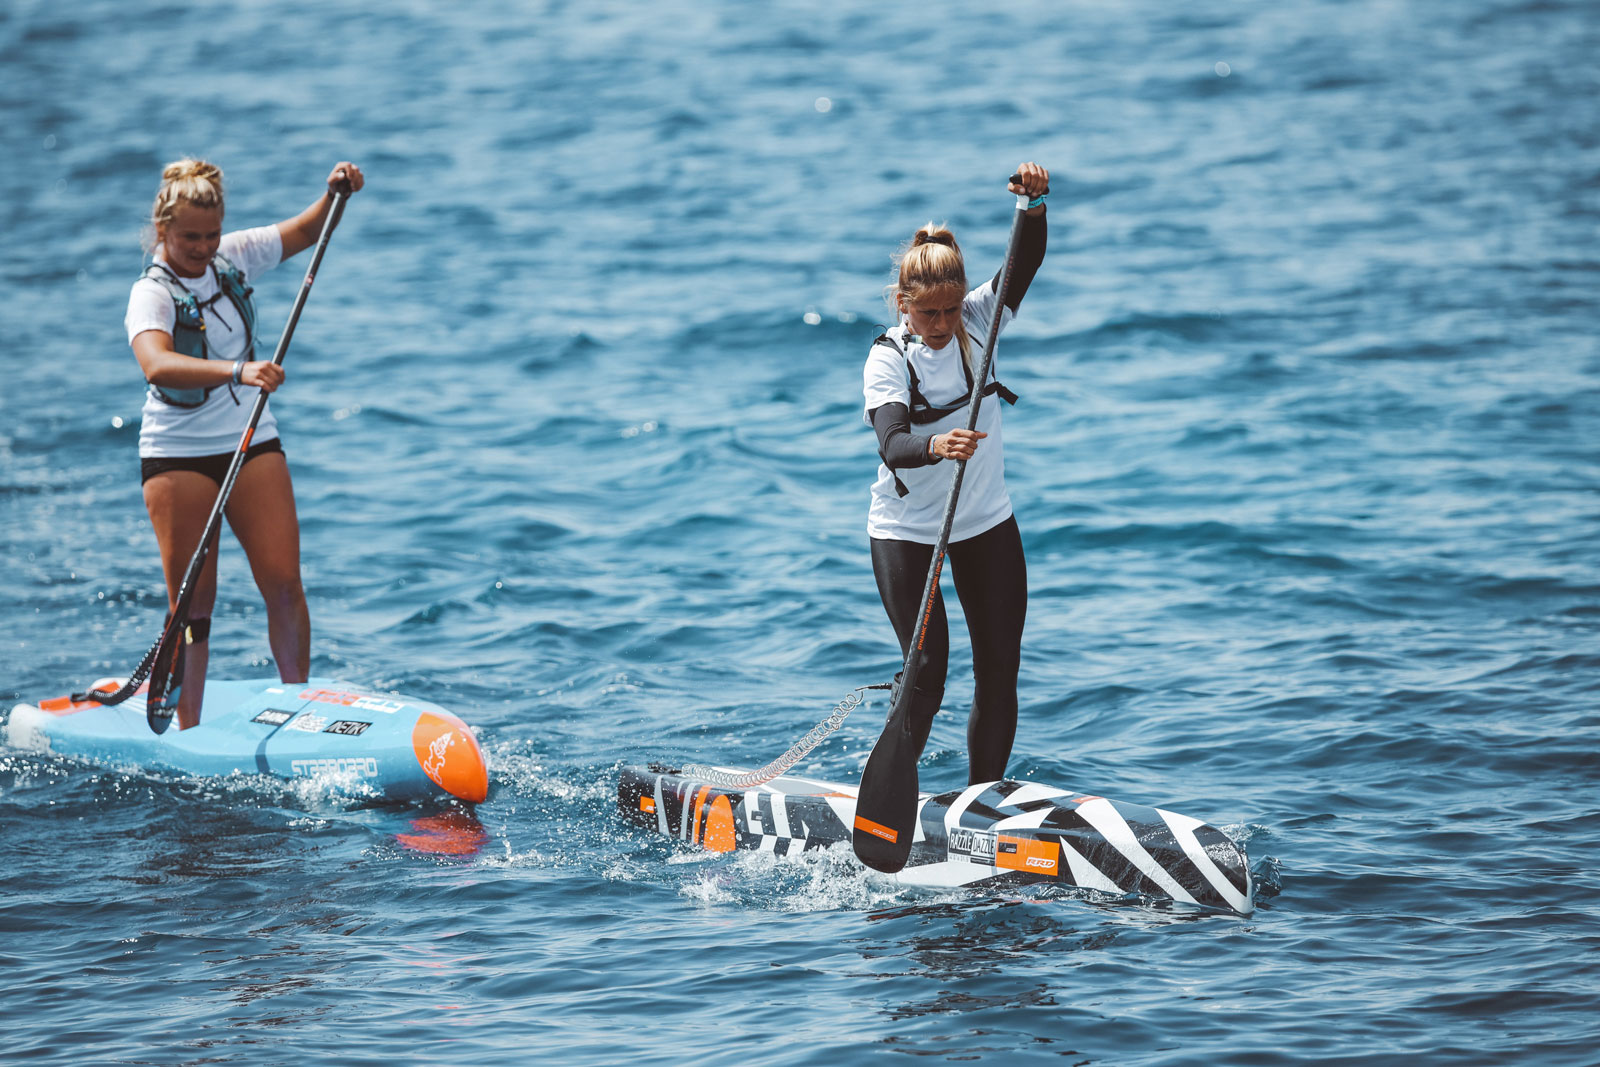 Starboard-SUP-Stand-Up-Paddleboarding-Michael-Booth-Fiona-Wylde-Win-2019-Azur-Paddle-Days-Race-Event-France-Fiona-vs-Susak